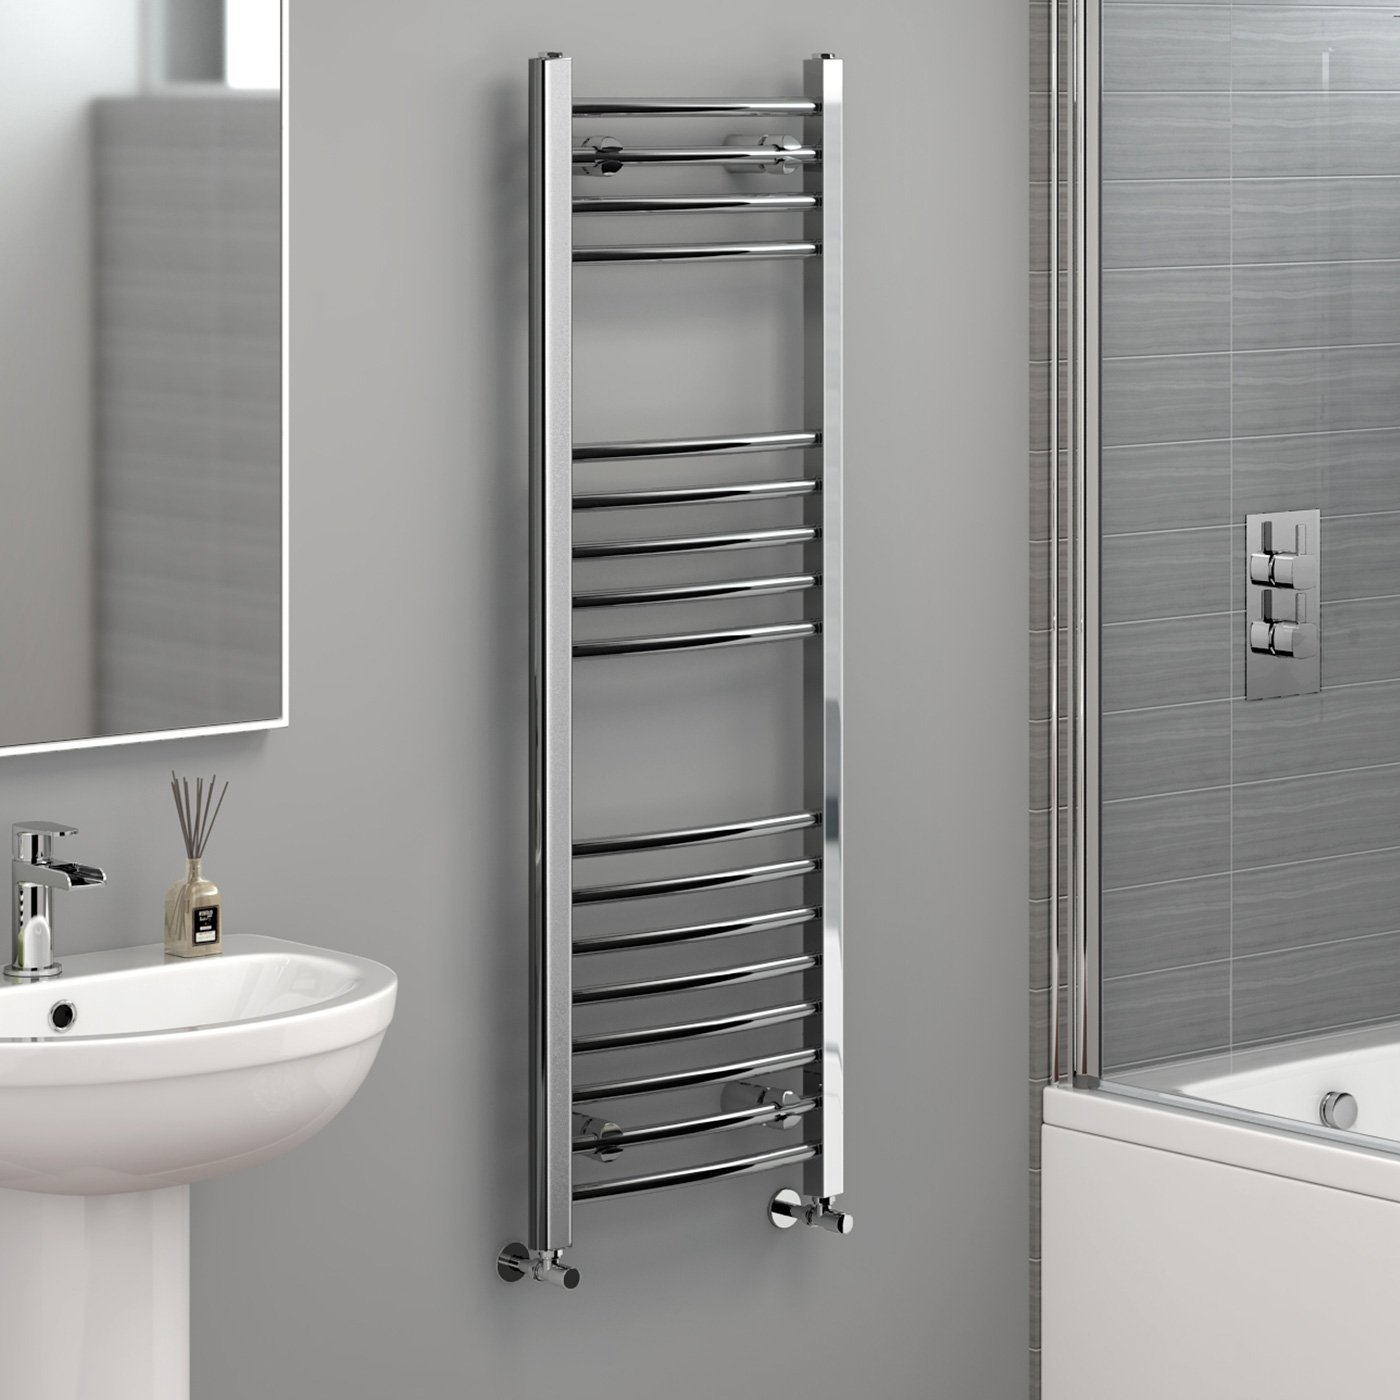 Heated Towel Rail in Chrome 1200x400mm